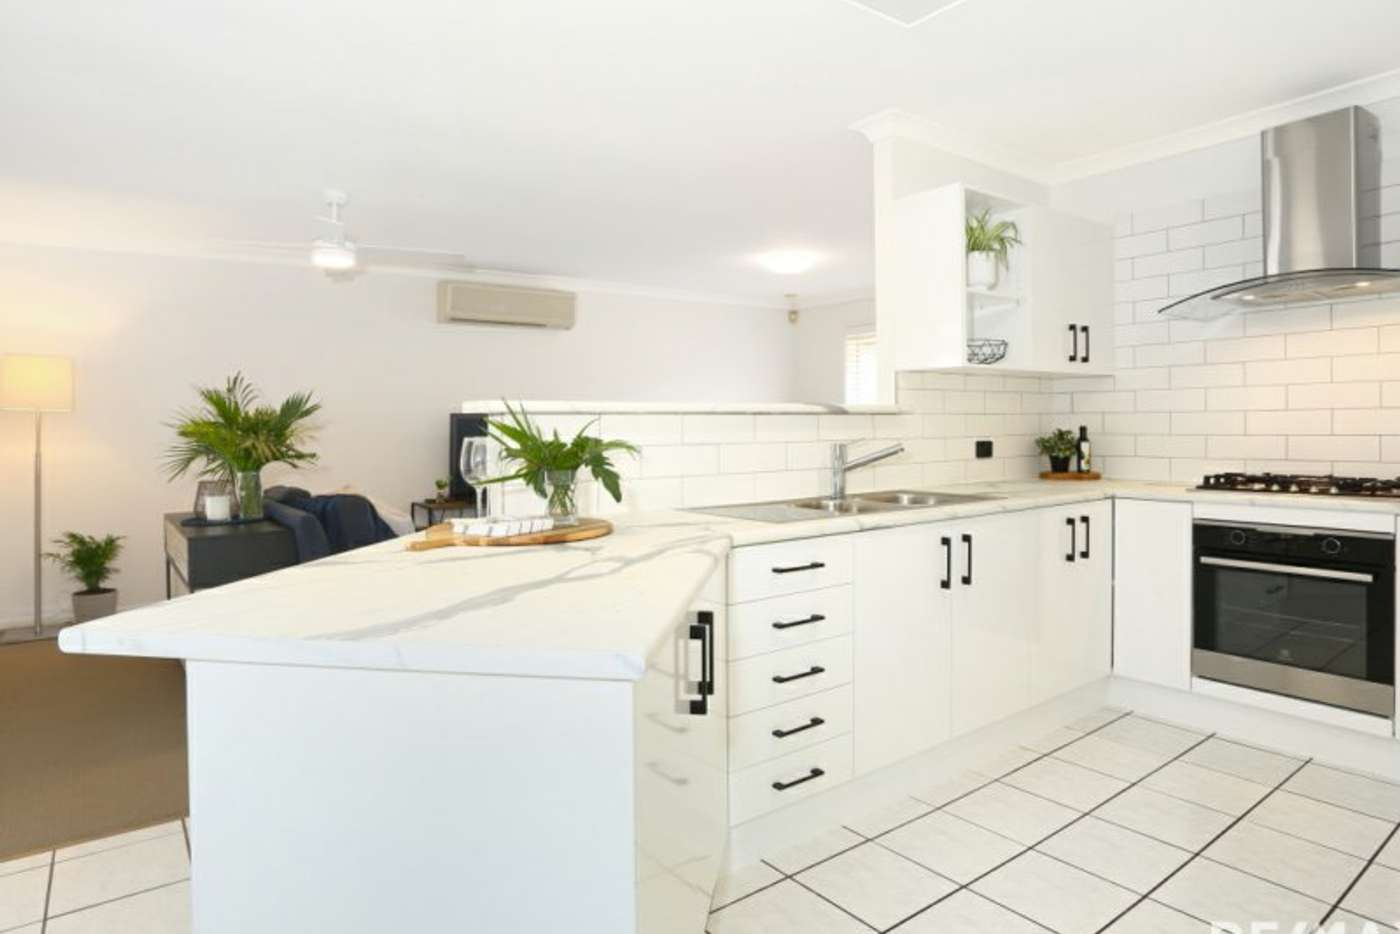 Fifth view of Homely house listing, 6 Sunnybrae Cl, Merrimac QLD 4226